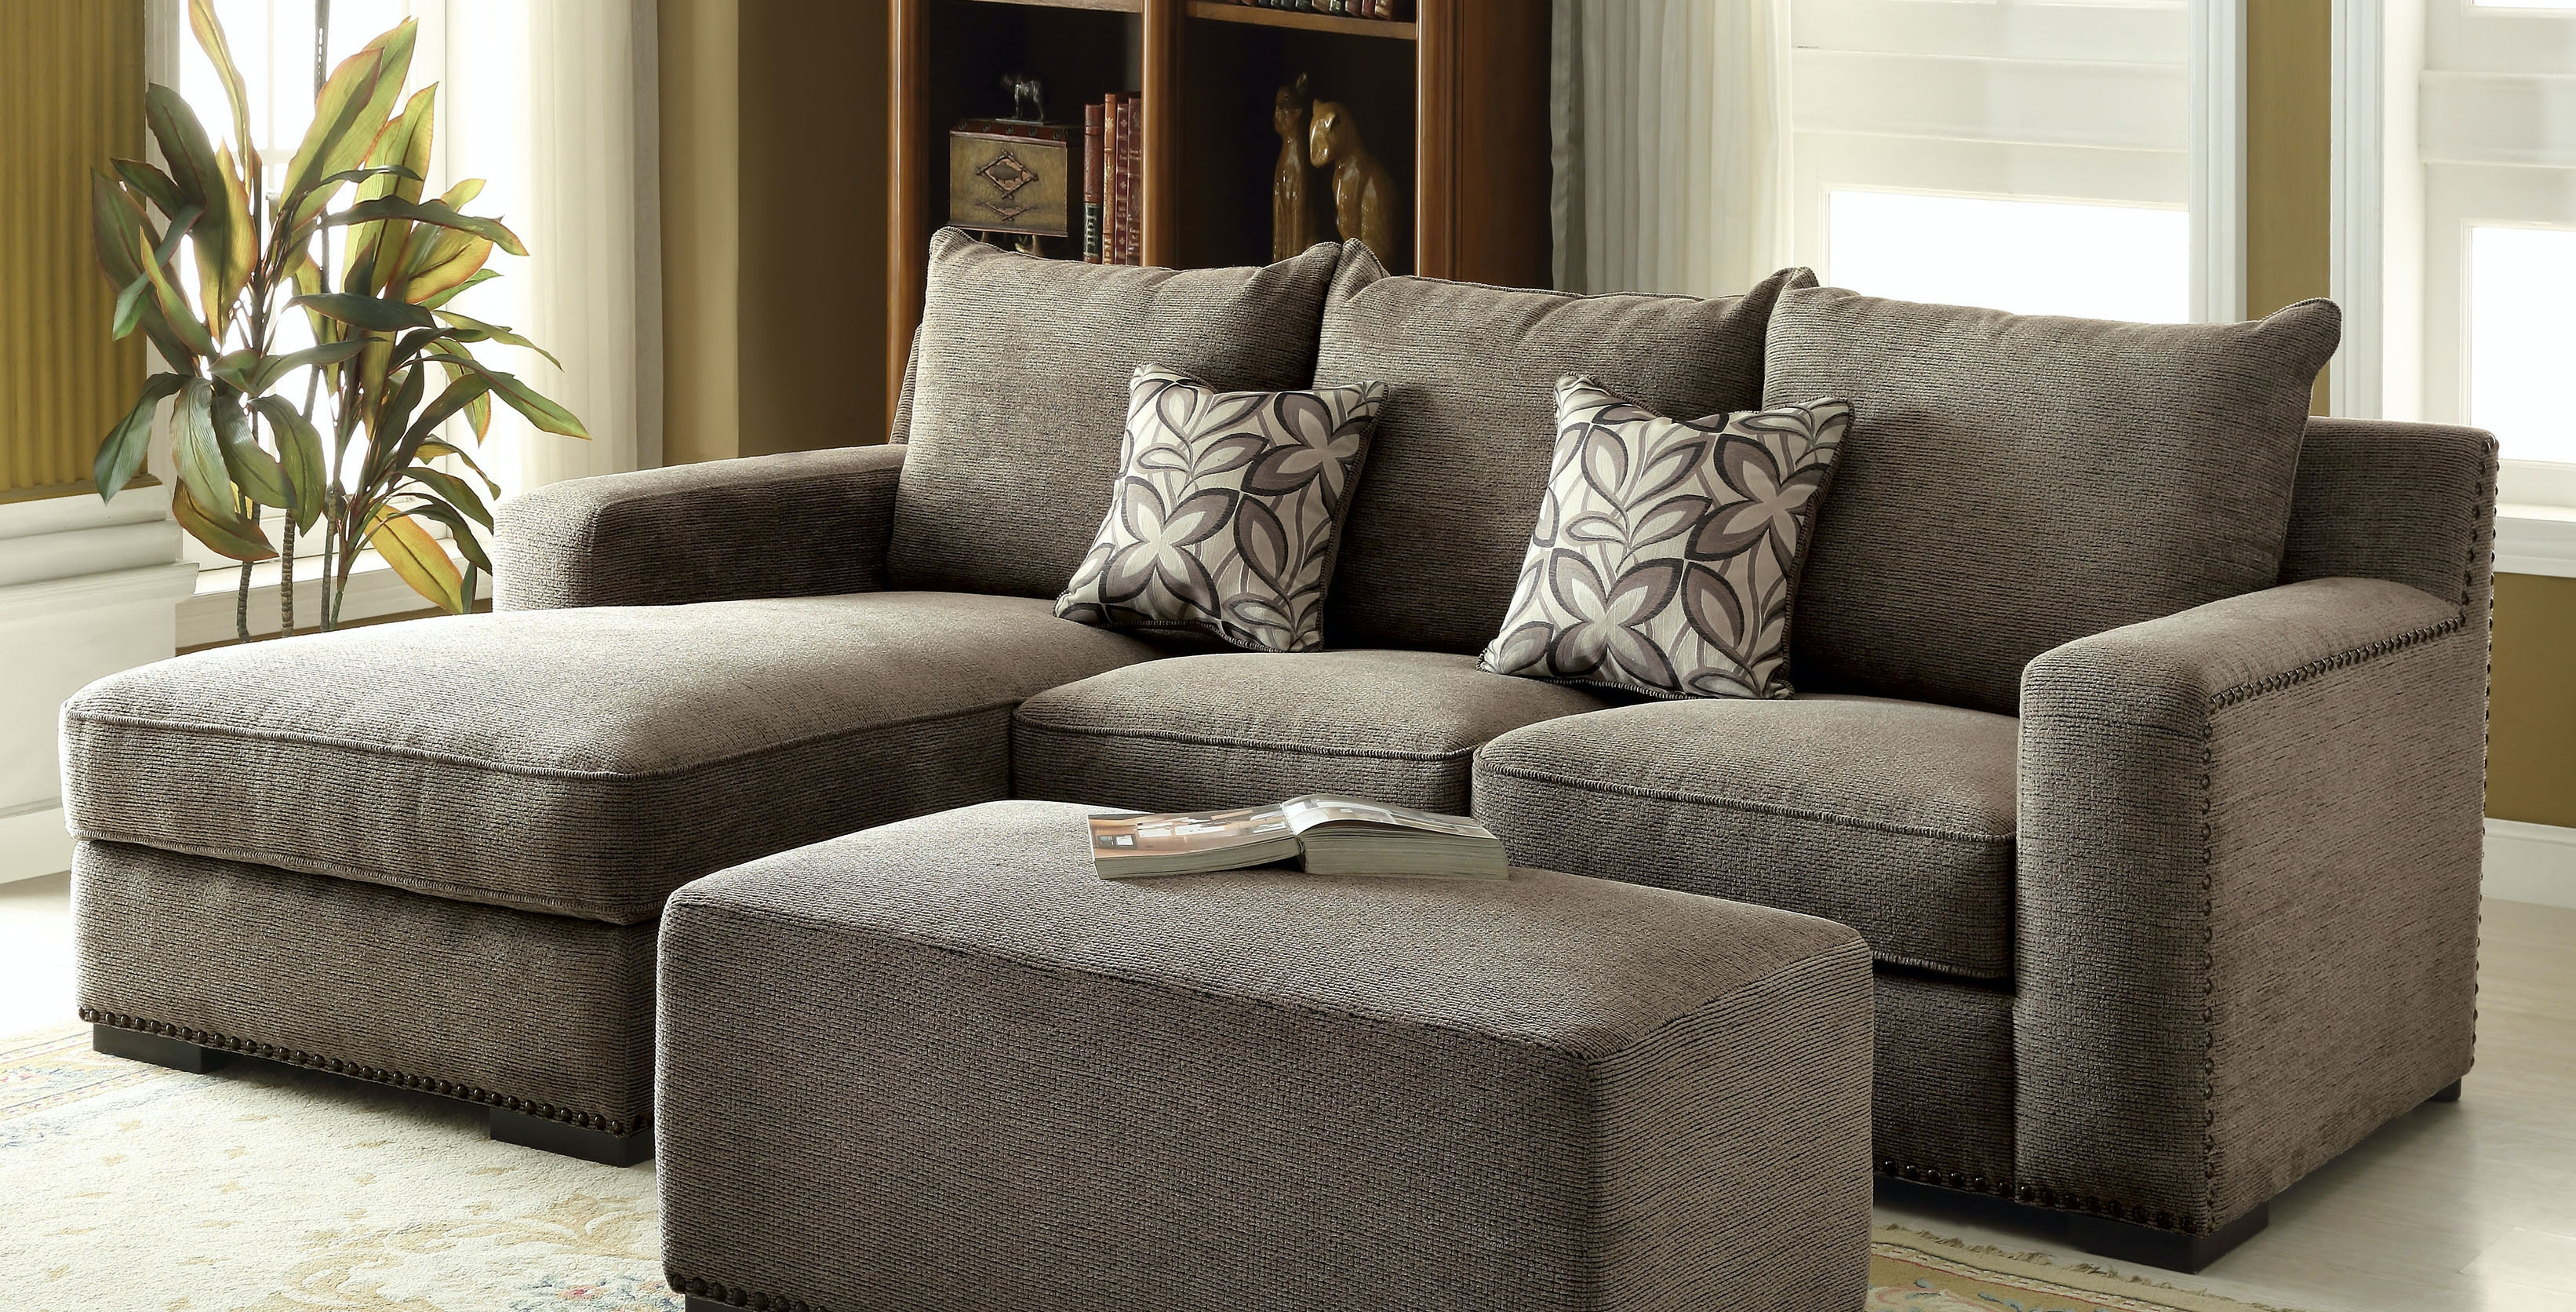 Acme Furniture Ushury Sectional Sofa With 2 Pillows 53590